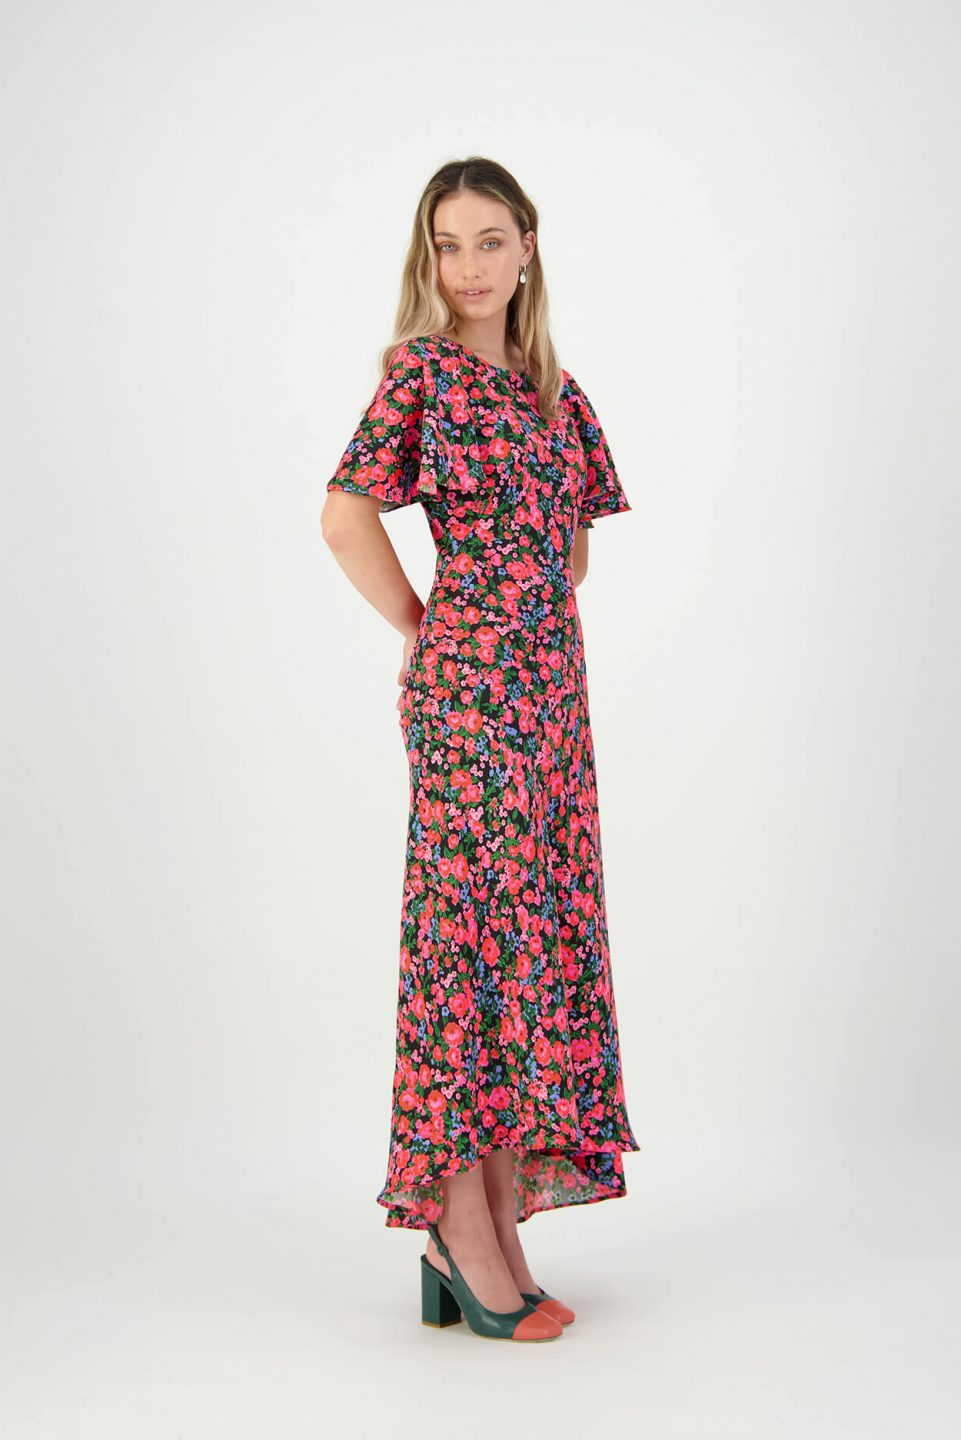 E-commerce fashion model photography services in Auckland and New Zealand